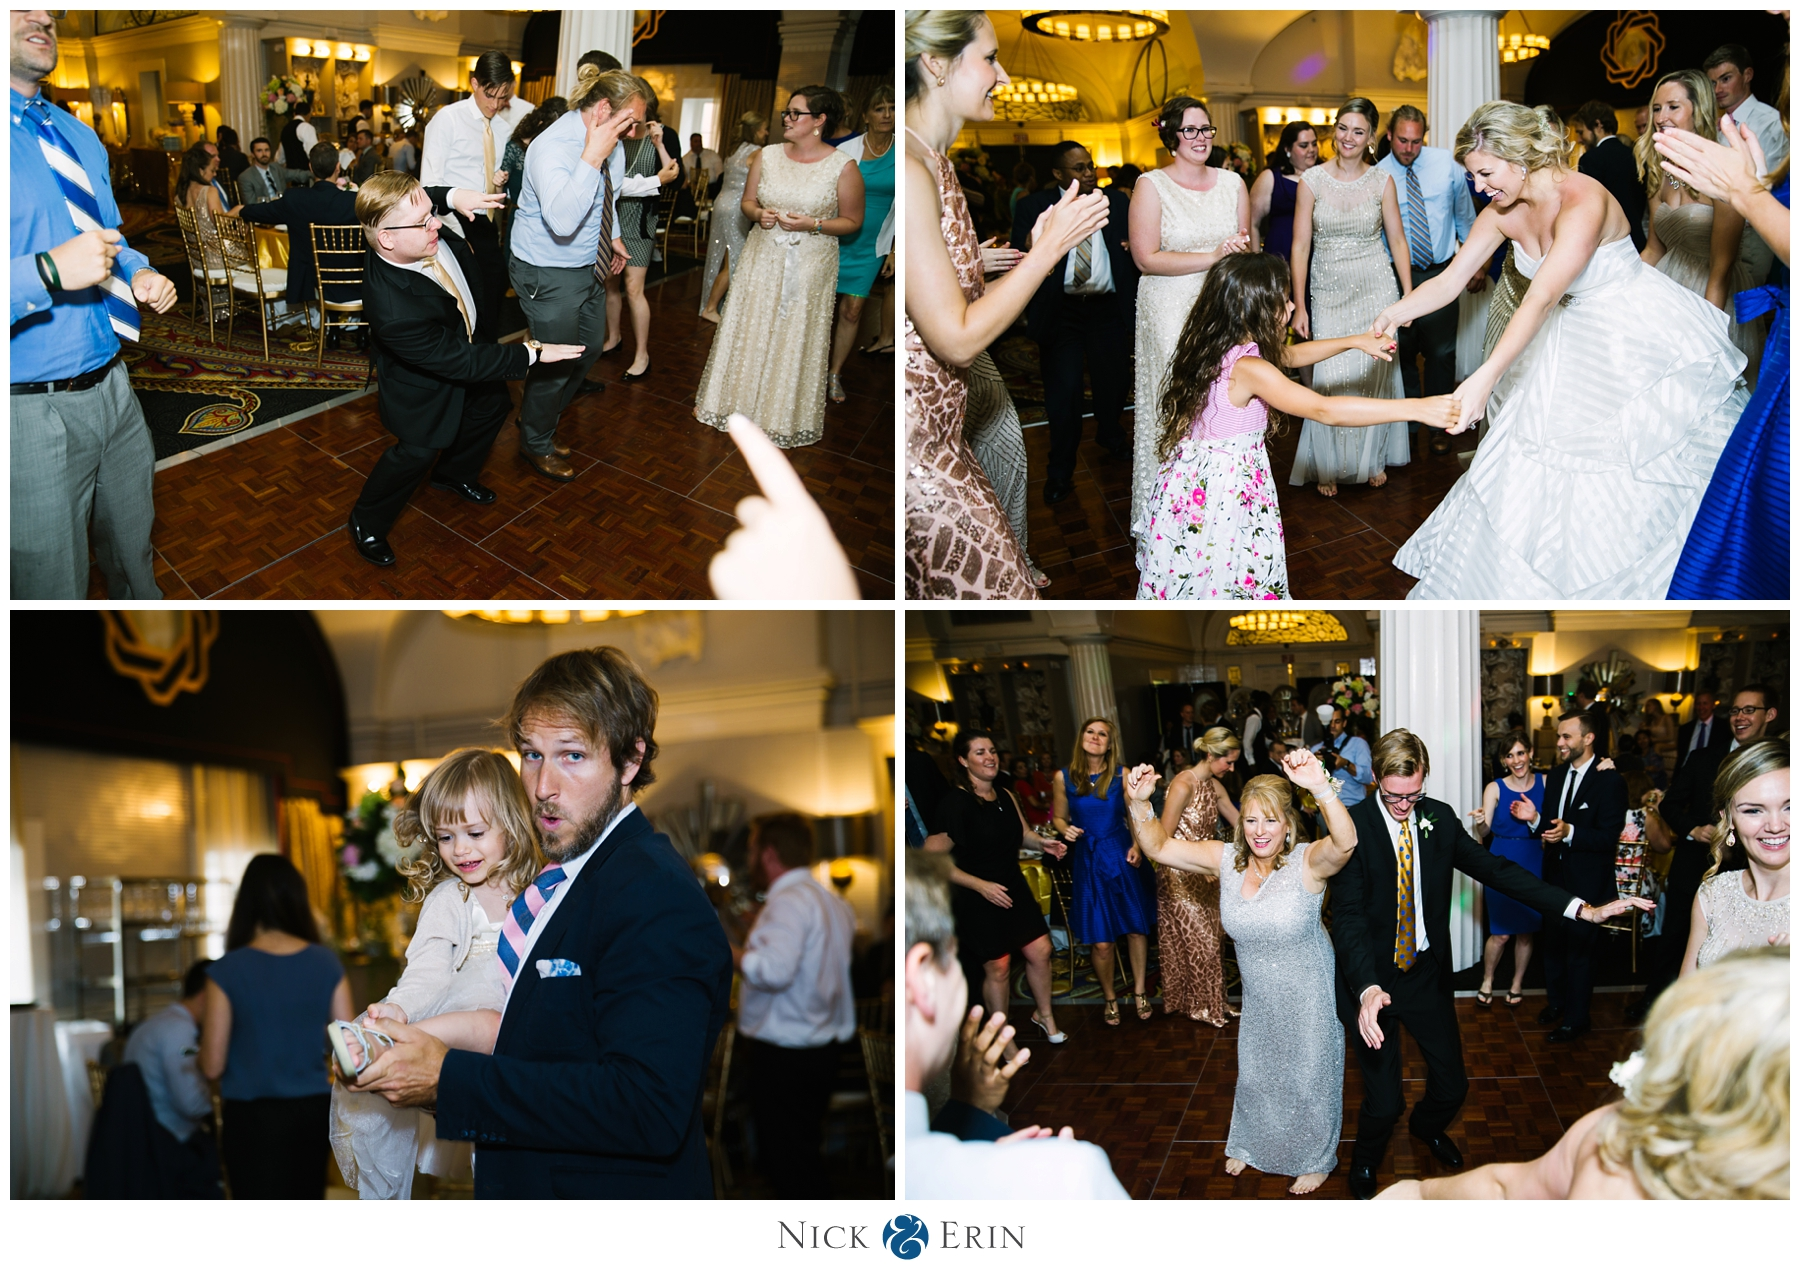 Donner_Photography_Washington DC Wedding_Rachel & Taylor_0065